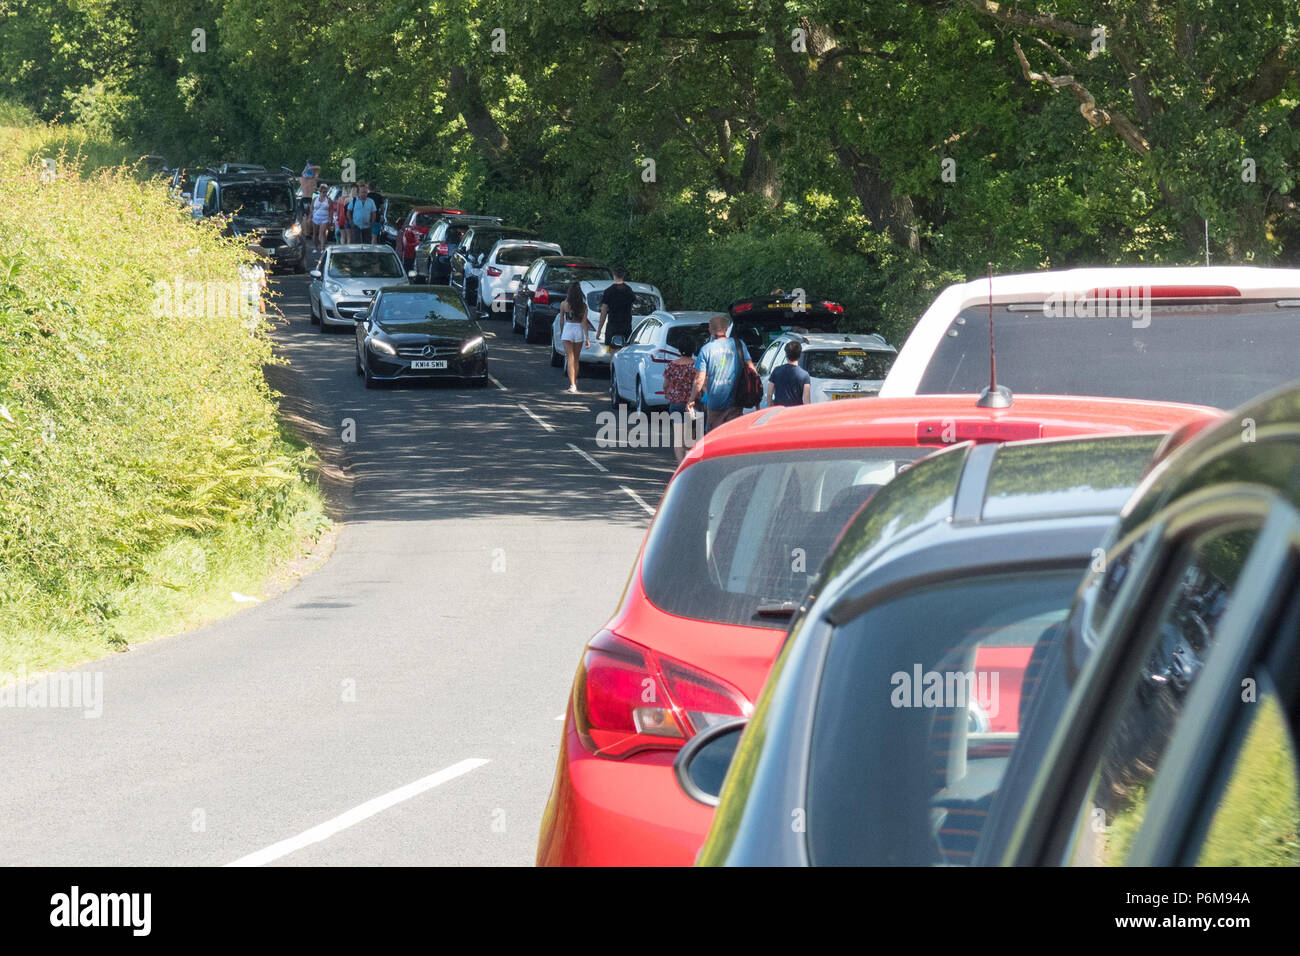 Finnich Glen, Killearn, Stirlingshire, Scotland, UK - 1 July 2018:  parking chaos and tourists walking along the B834 road in Stirlingshire visiting the increasingly popular Finnich Glen.  The B834 was closed shortly afterwards due to dangerously parked cars on both sides of the road restricting flow.  The 100 foot deep gorge between Killearn and Drymen has grown in popularity since appearing in Outlander leading to parking pressures and litter problems Credit: Kay Roxby/Alamy Live News Stock Photo